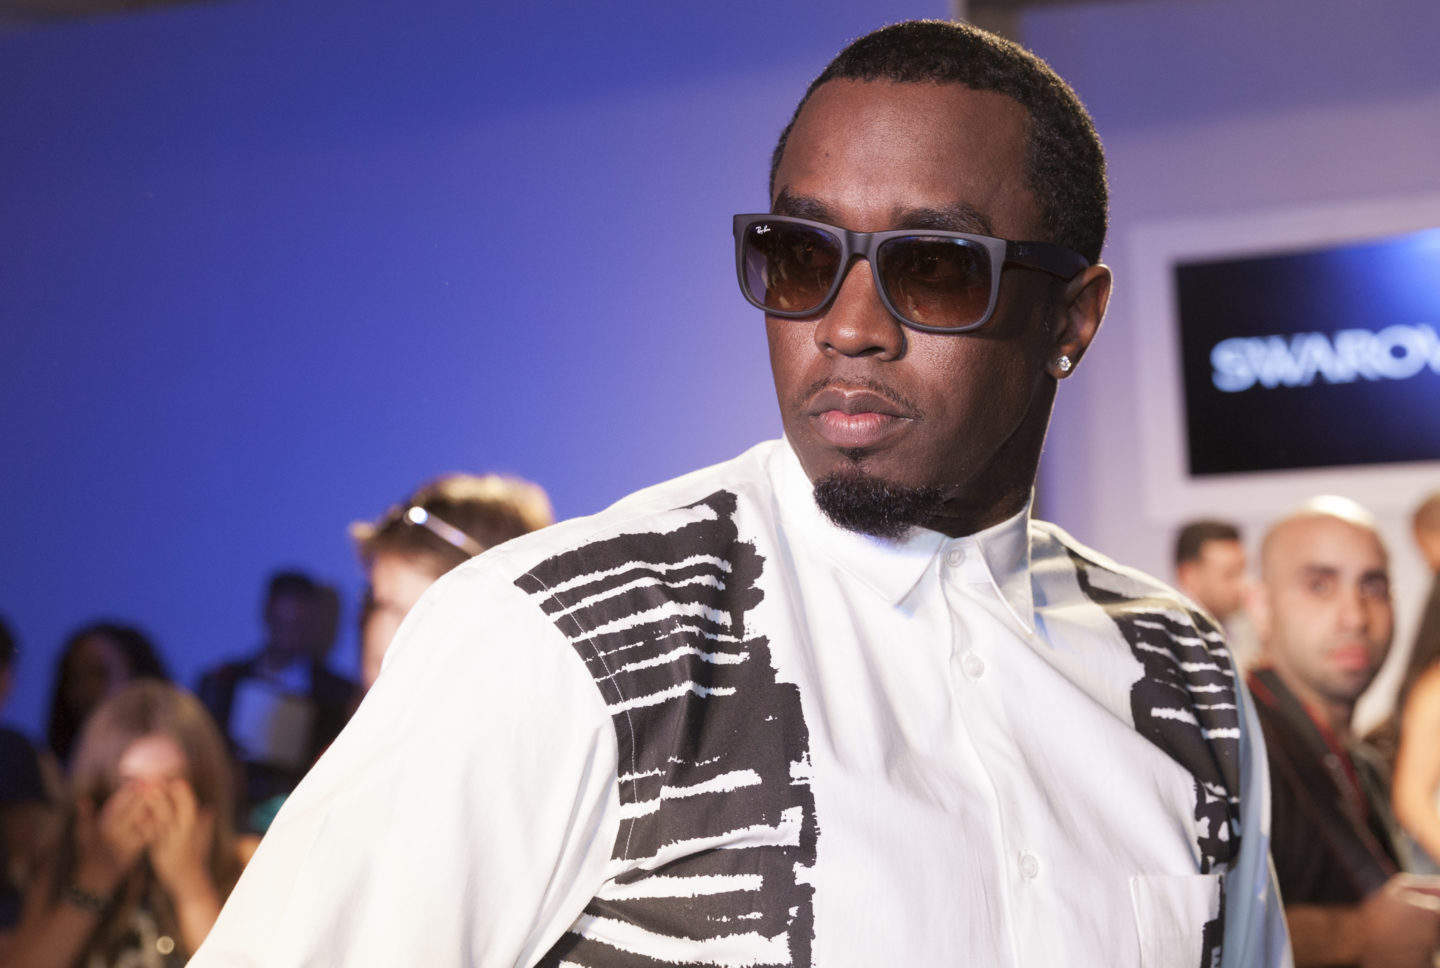 Diddy Advises Fans To Lean 'Into The Good Stuff That Remains' Amidst The Global Crisis